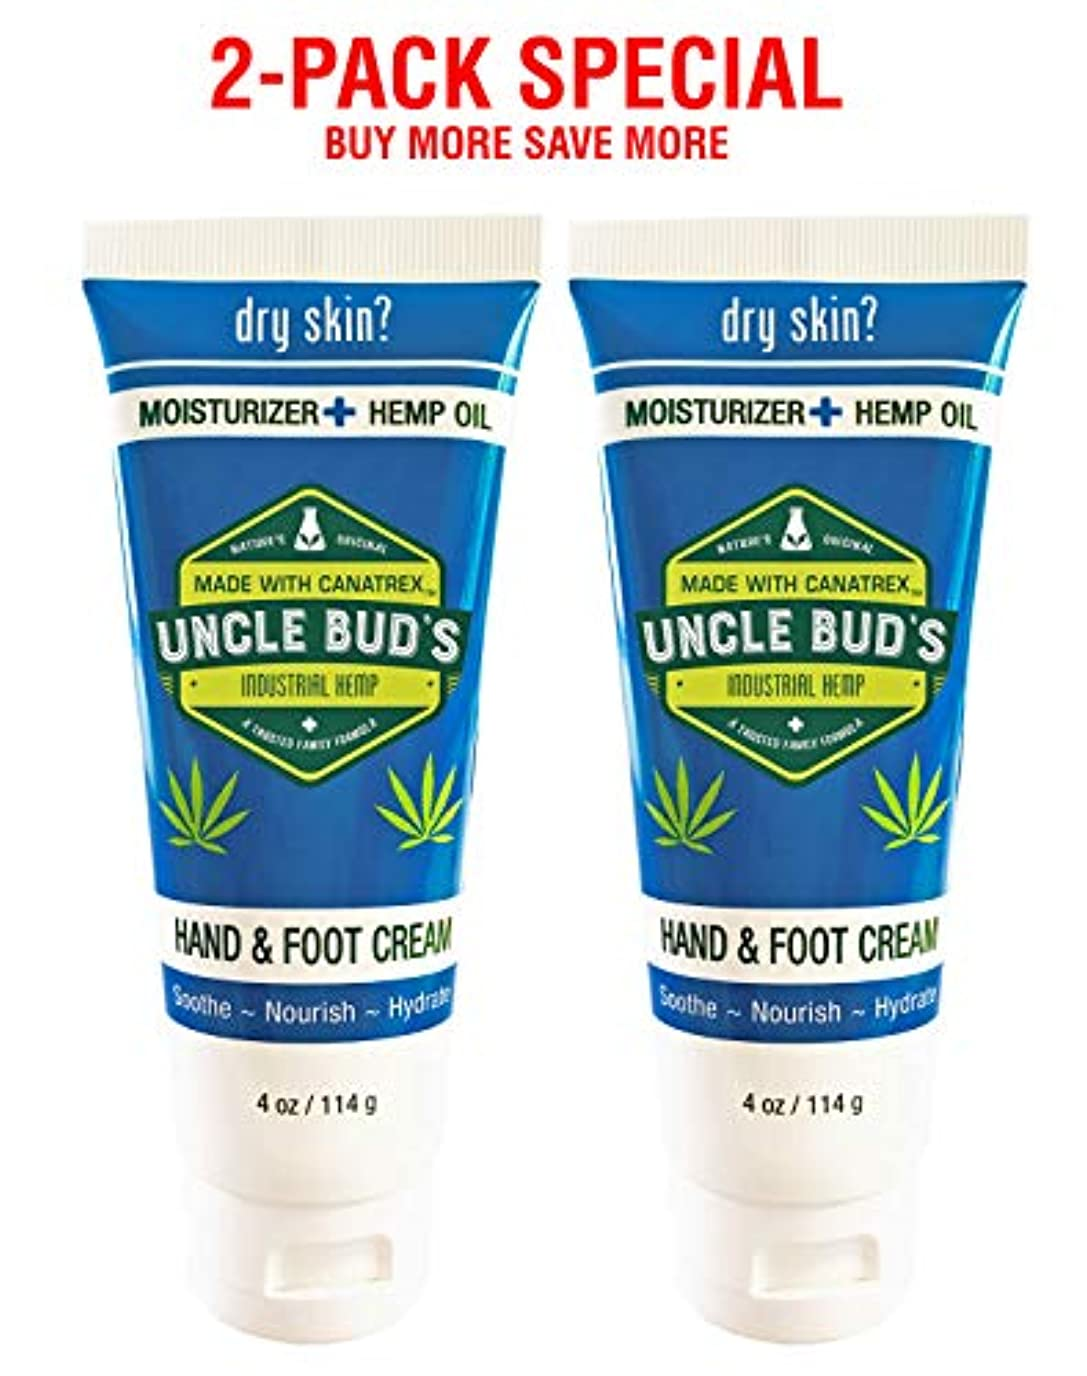 Uncle Bud's 2-Pack Special - Hand and Foot Cream HEMP Oil - 4oz per tube